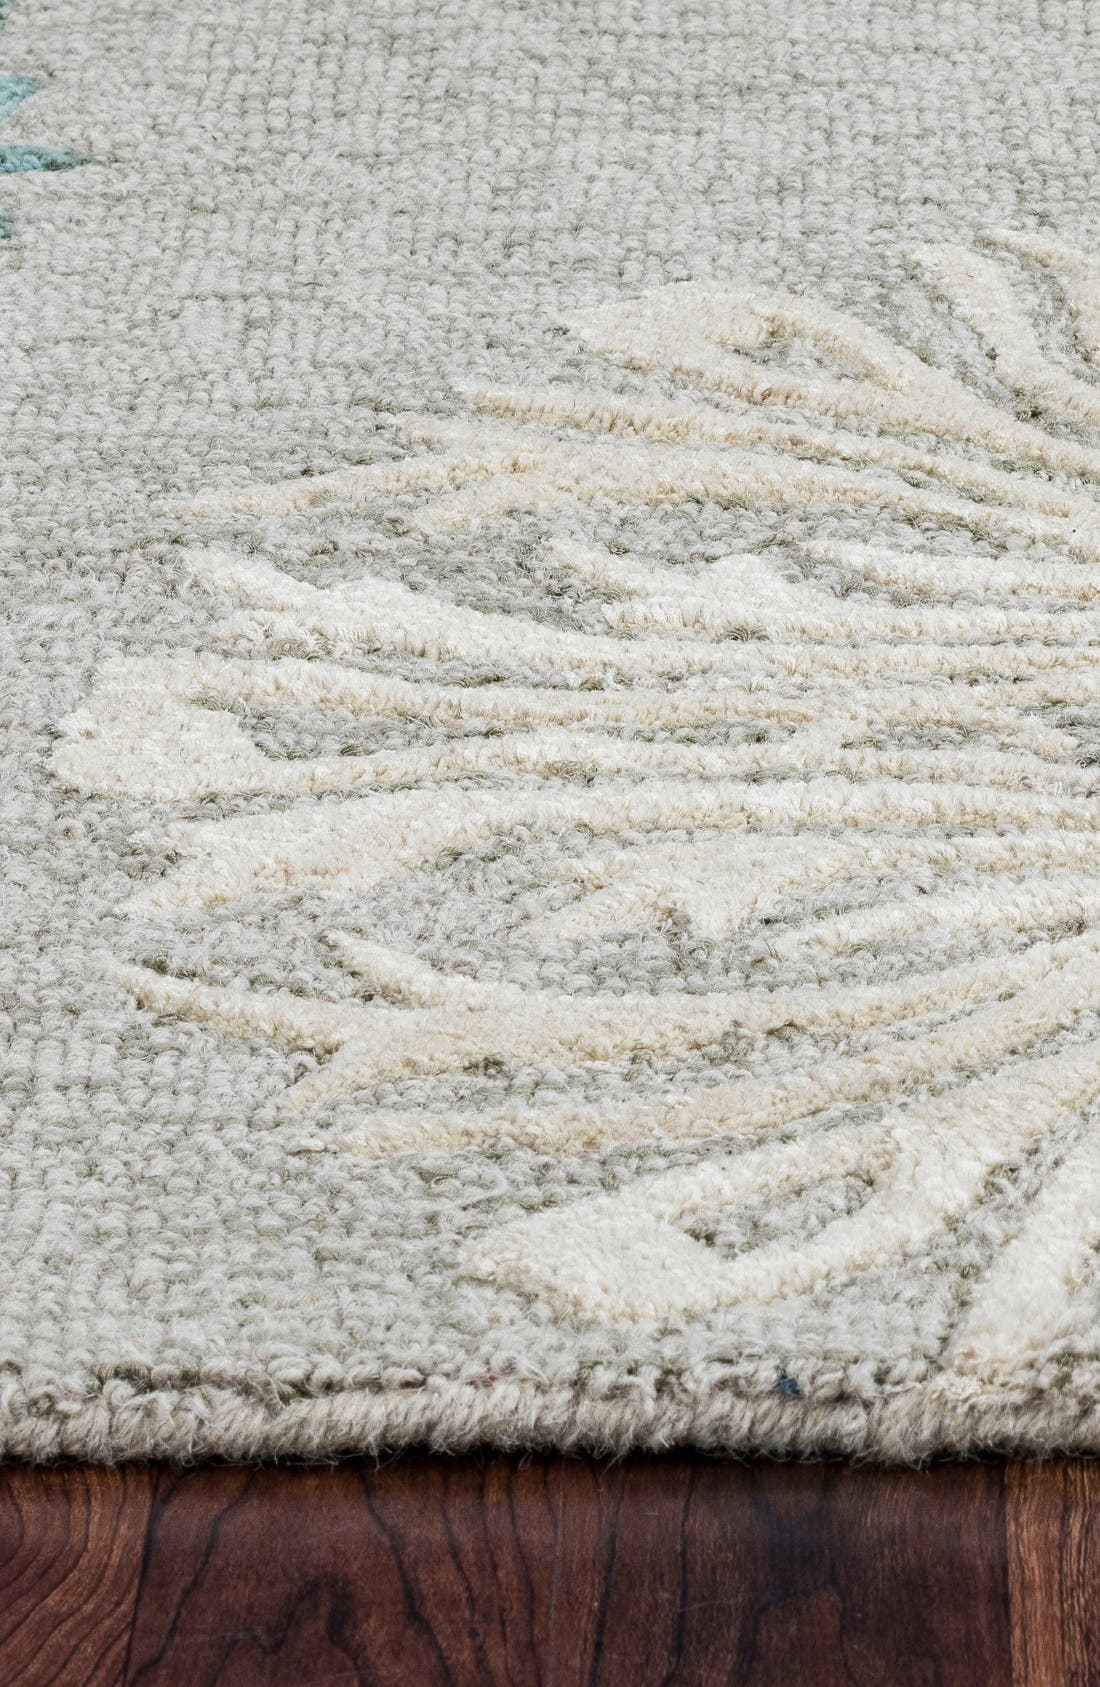 'Dimensional' Wool Area Rug,                             Alternate thumbnail 3, color,                             Light Blue/ Grey